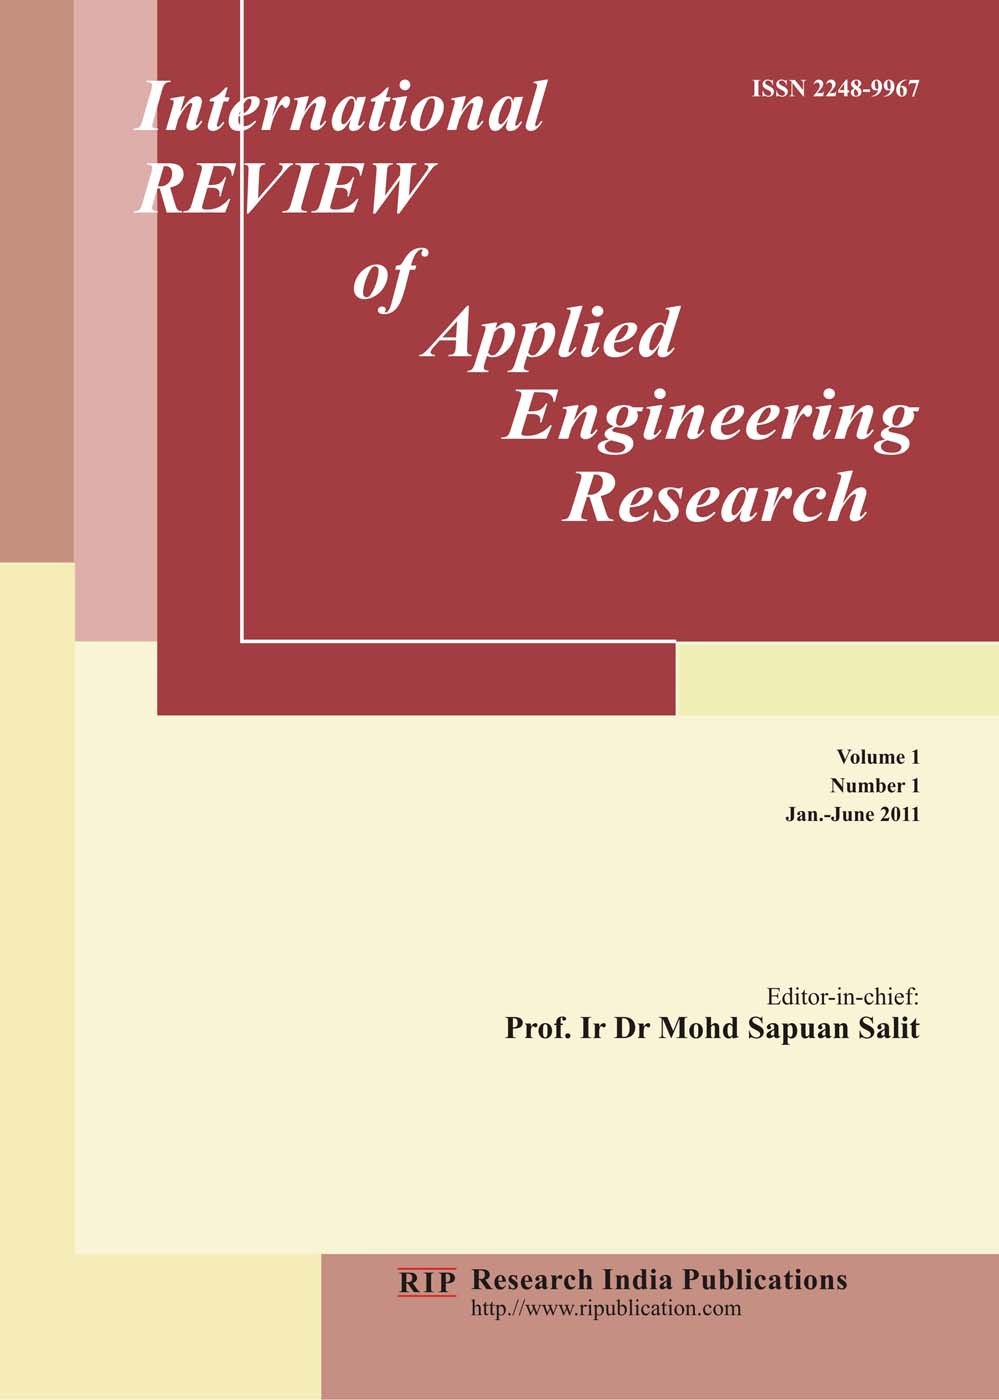 applied research is Applied nursing research presents original, peer-reviewed research findings clearly and directly for clinical applications in all nursing specialties regular features include ask the experts, research briefs, clinical methods, book reviews, news and announcements, and an editorial section.